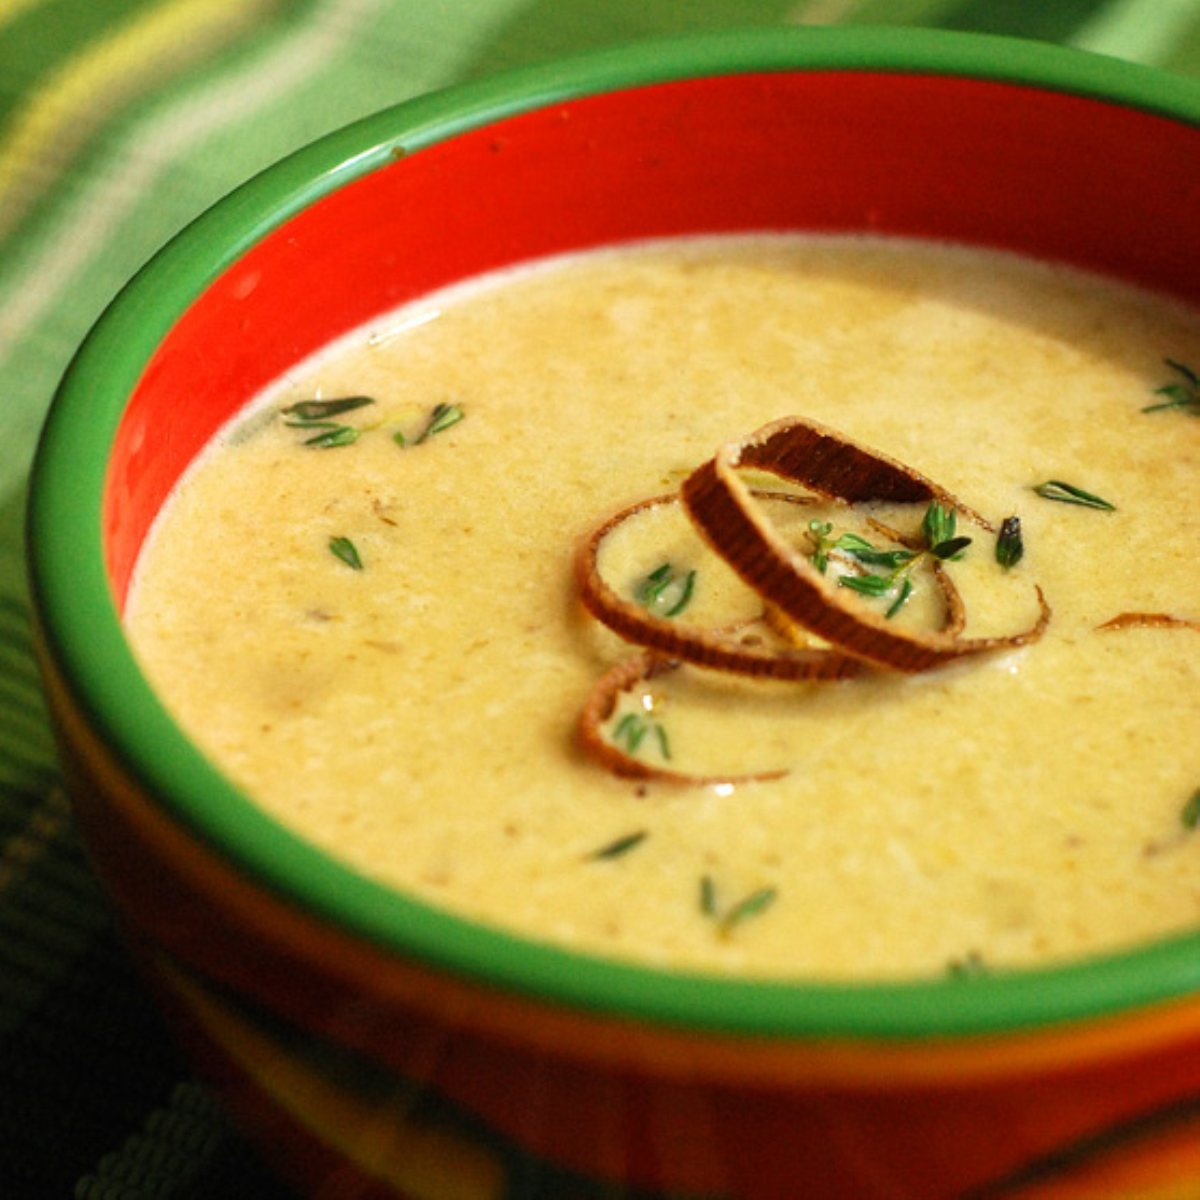 ... and Chili Cream-style Soups Nibble Me This Artichoke & Spinach Bisque